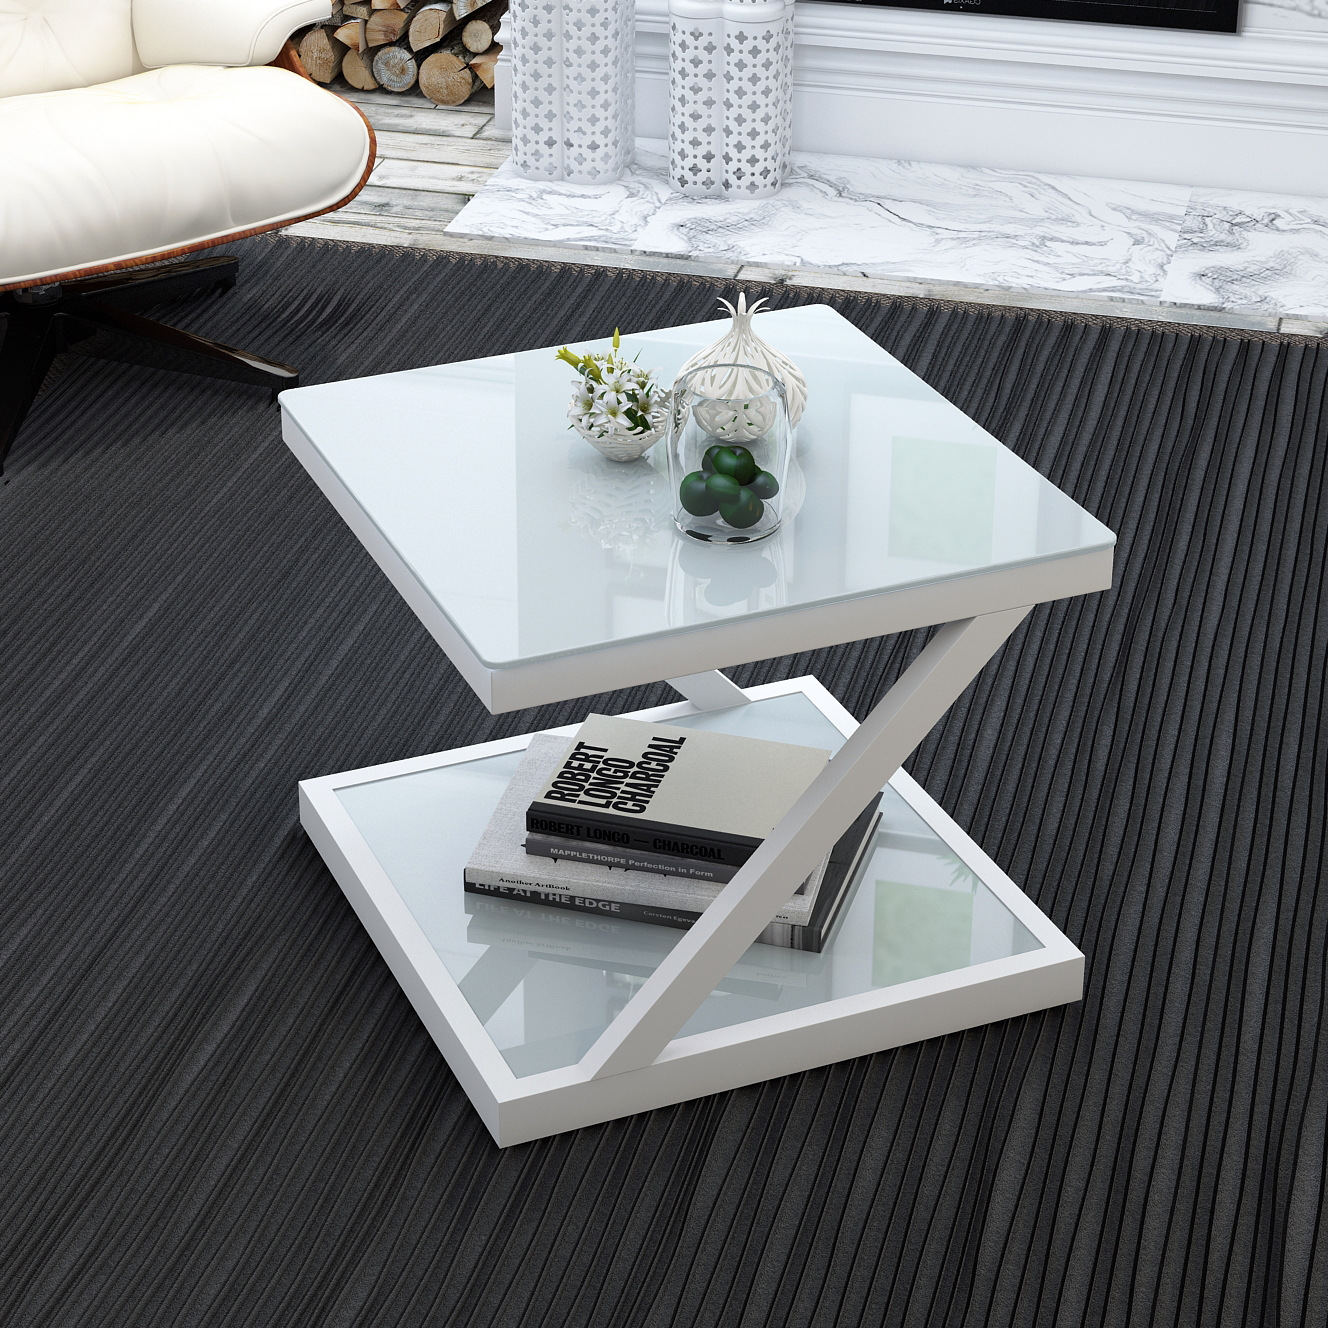 Simple And Modern Side Table Stalinite Small Tea Table Square Creativity Tea Table Drawing Room Small Table Modern Furniture Aliexpress